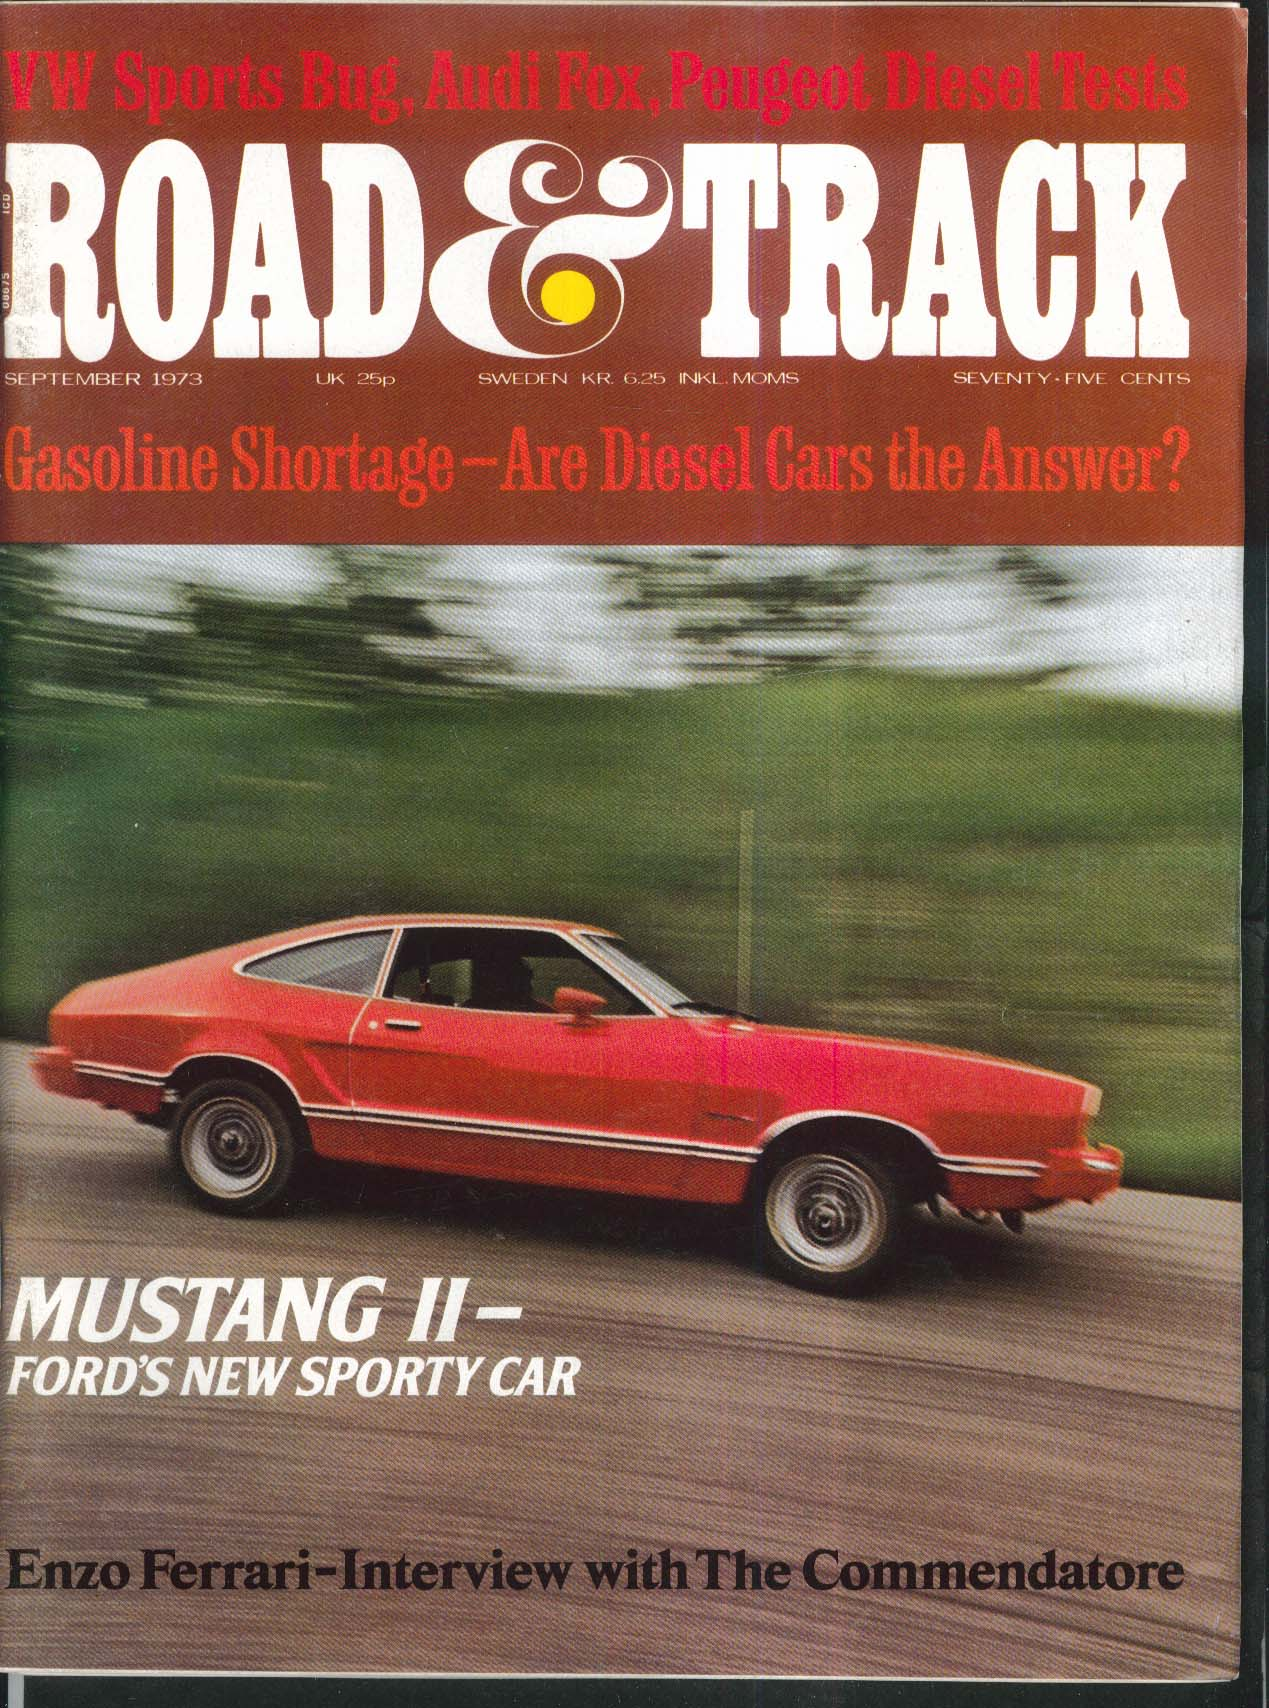 ROAD & TRACK Ford Mustang II Audi Fox Peugeot 504 Volkswagen Beetle tests 9 1973